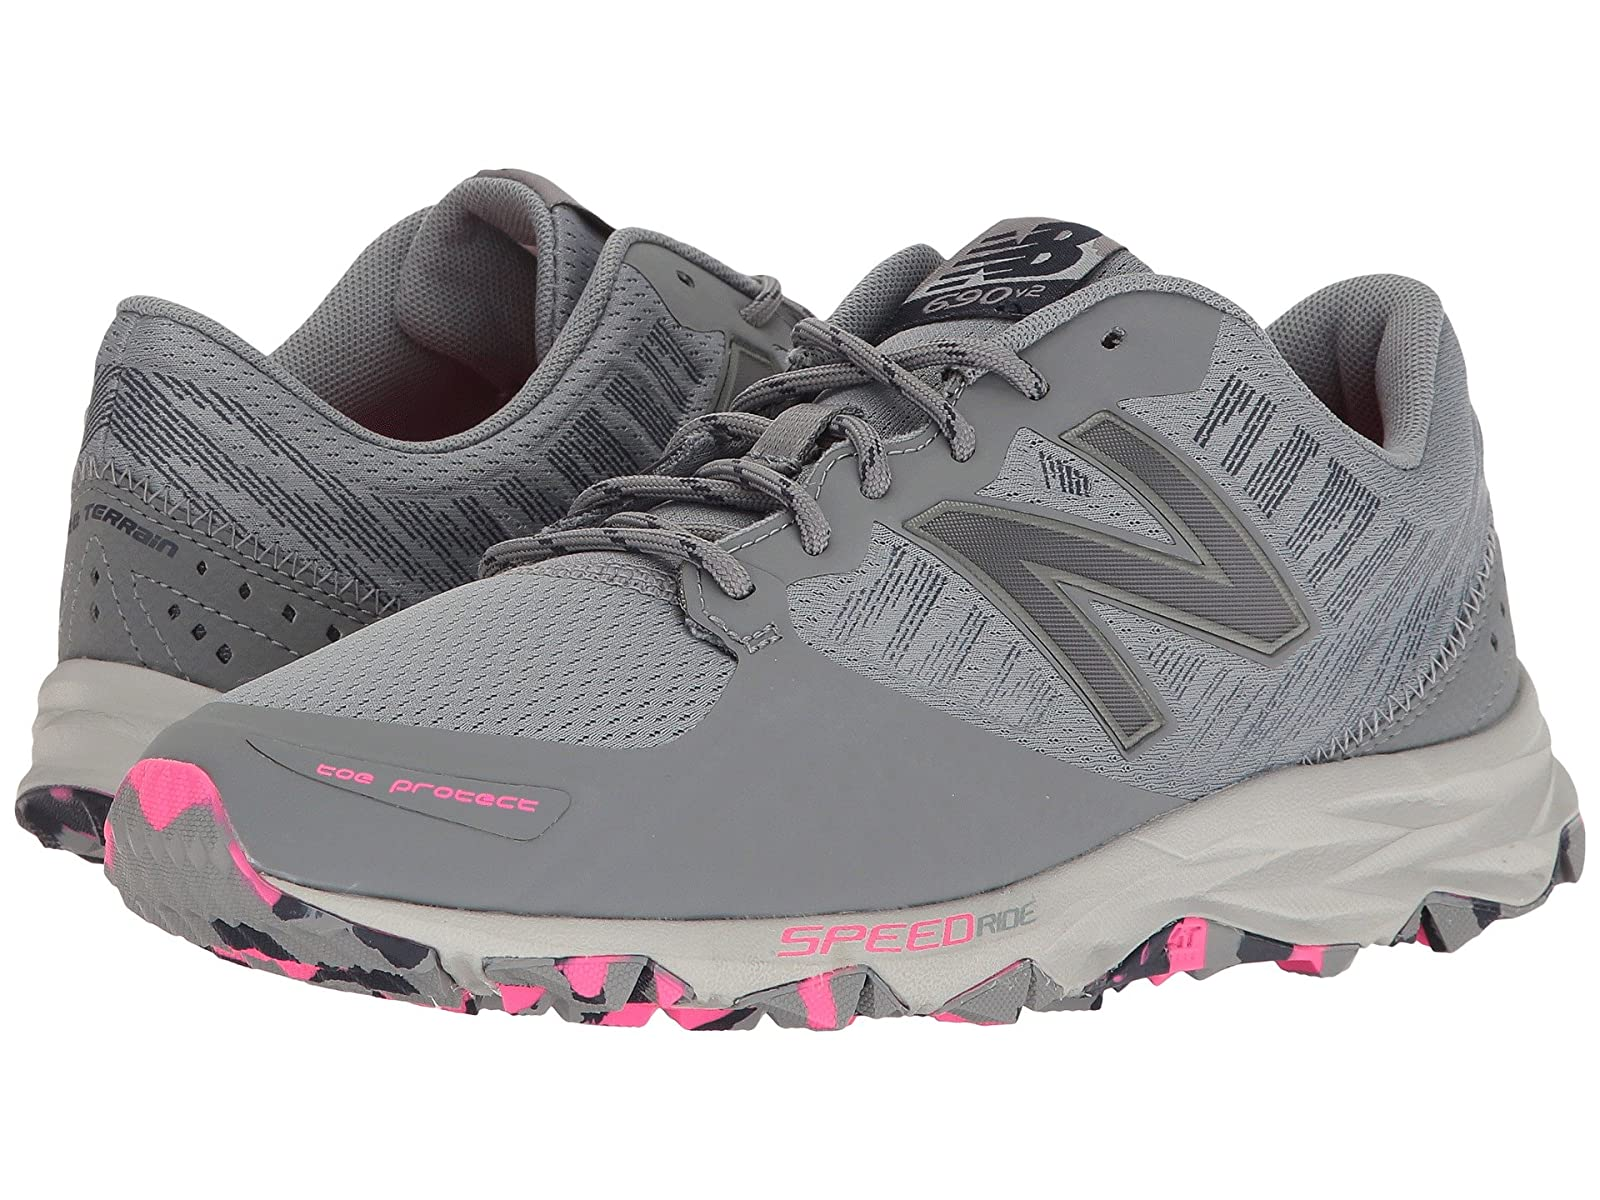 New Balance T690v2Cheap and distinctive eye-catching shoes